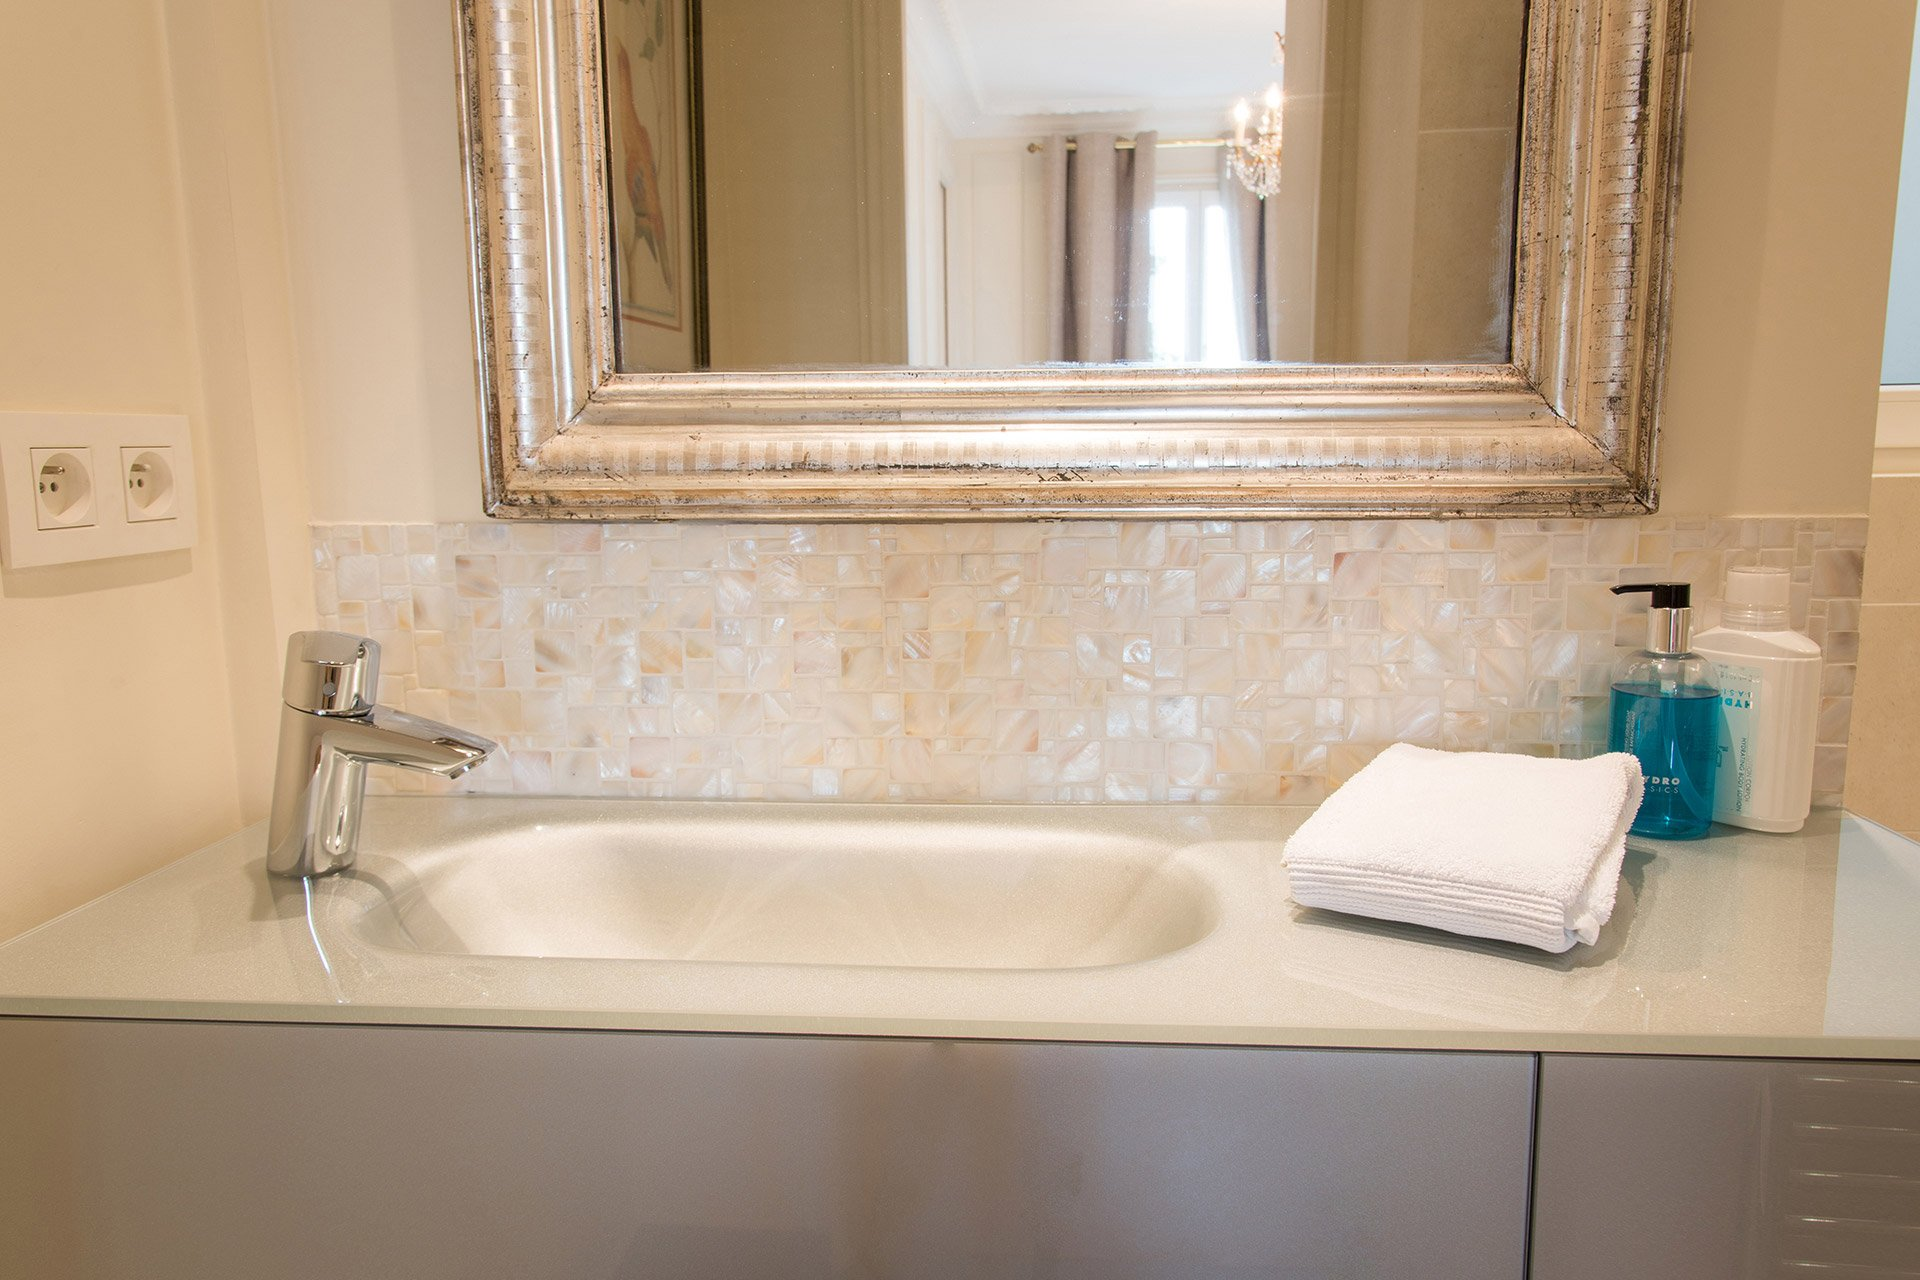 Mother-of-pearl tiles in the Merlot vacation rental offered by Paris Perfect